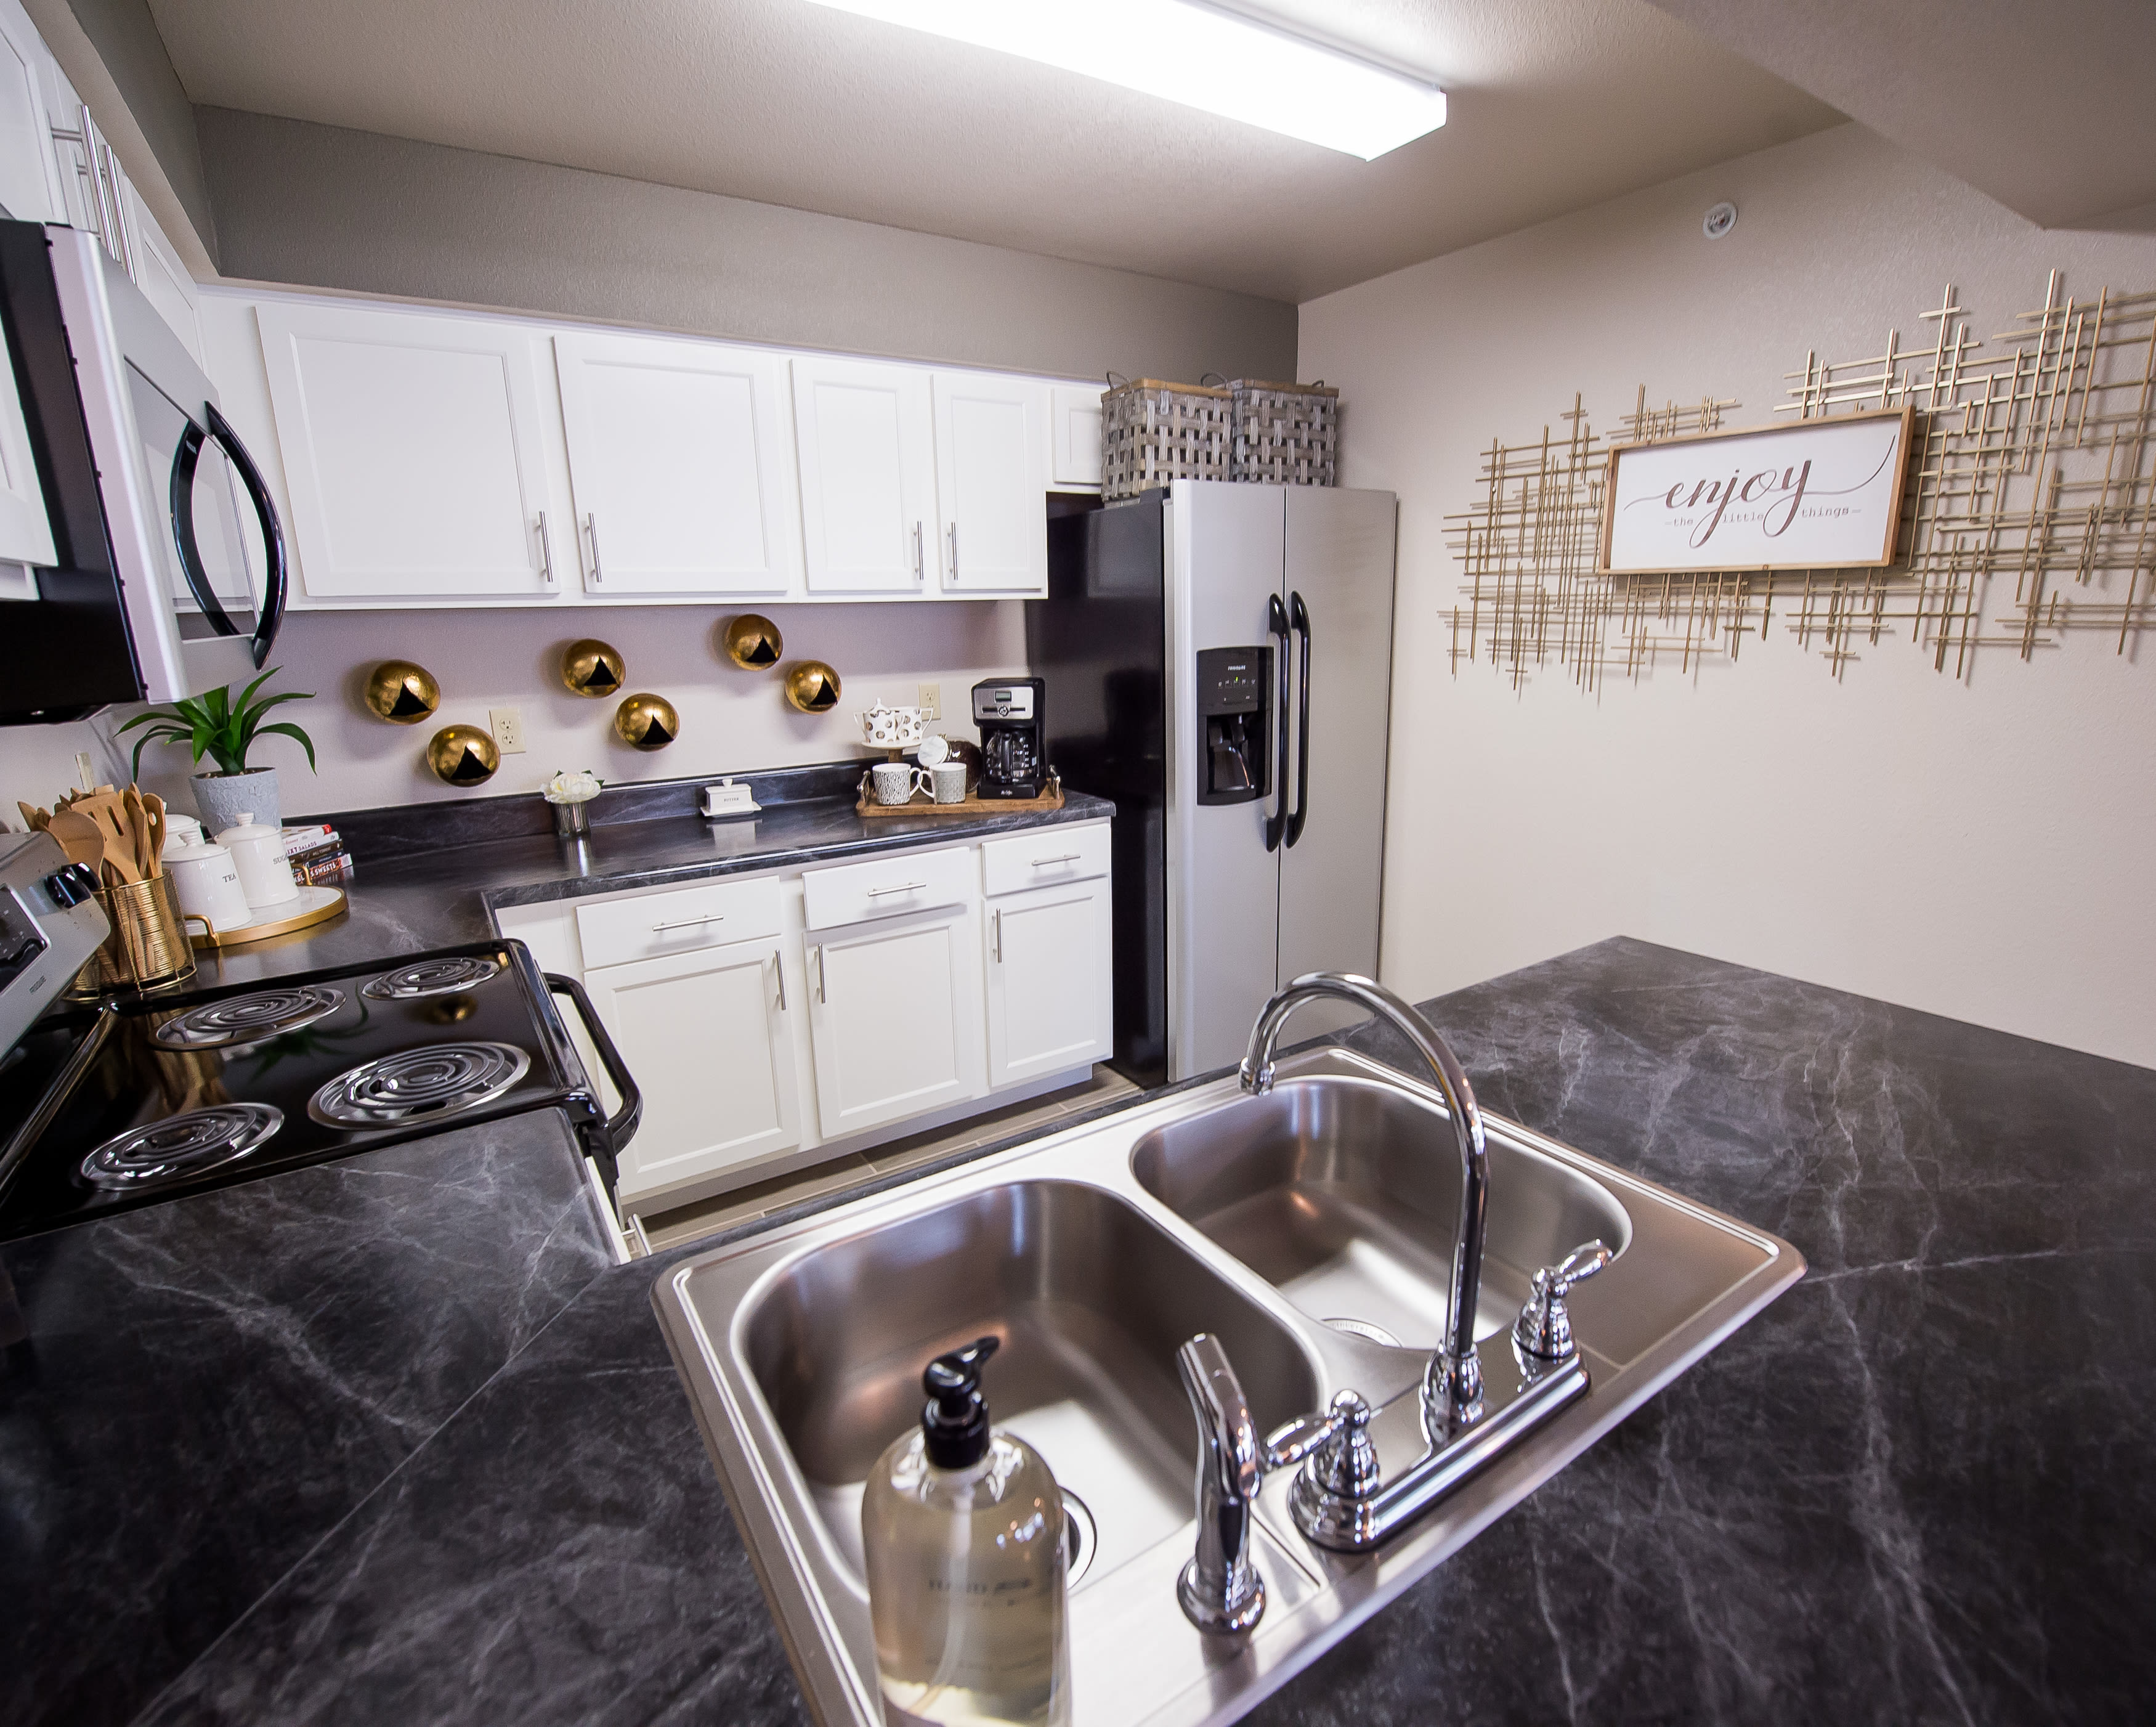 Modern kitchen at apartments in Temple, Texas